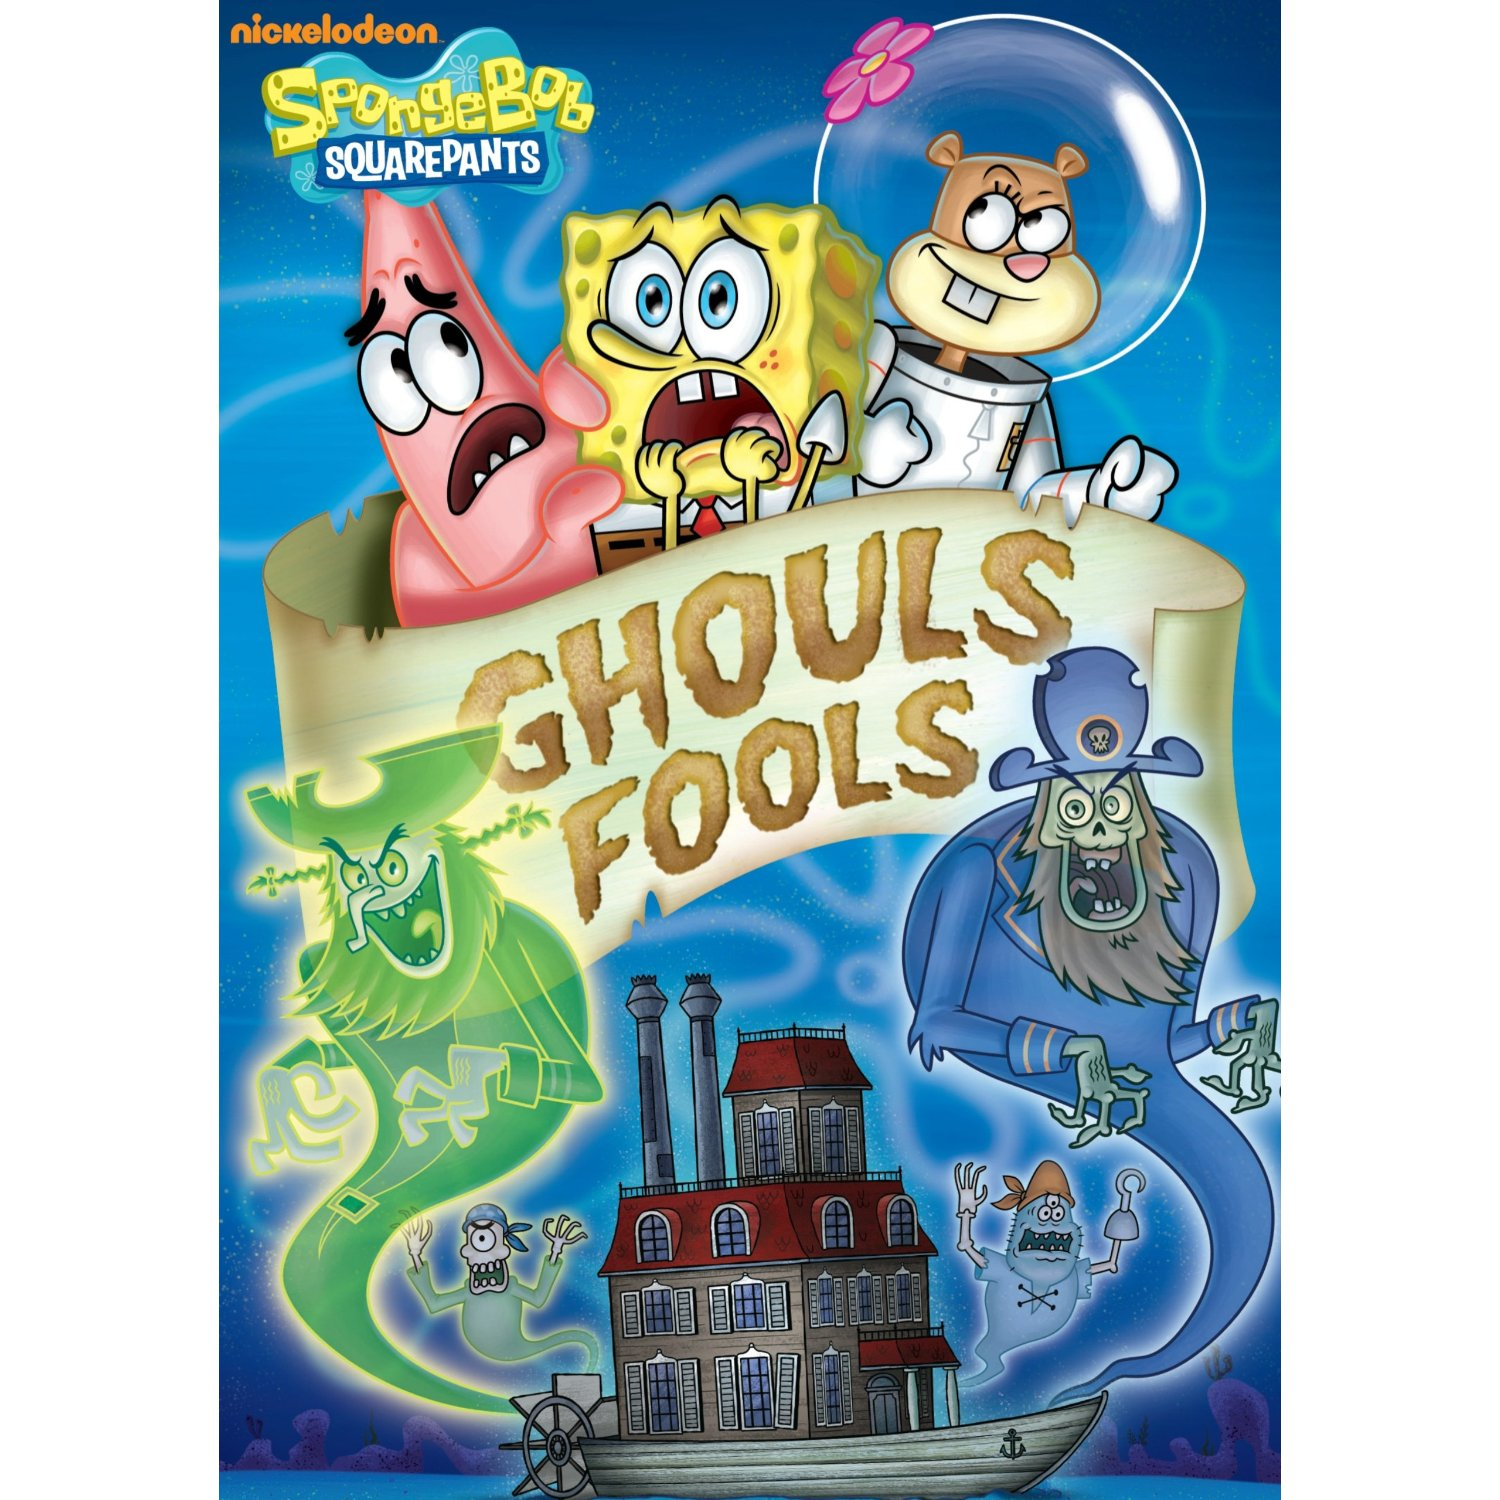 Spongbob squarepants halloween dvd